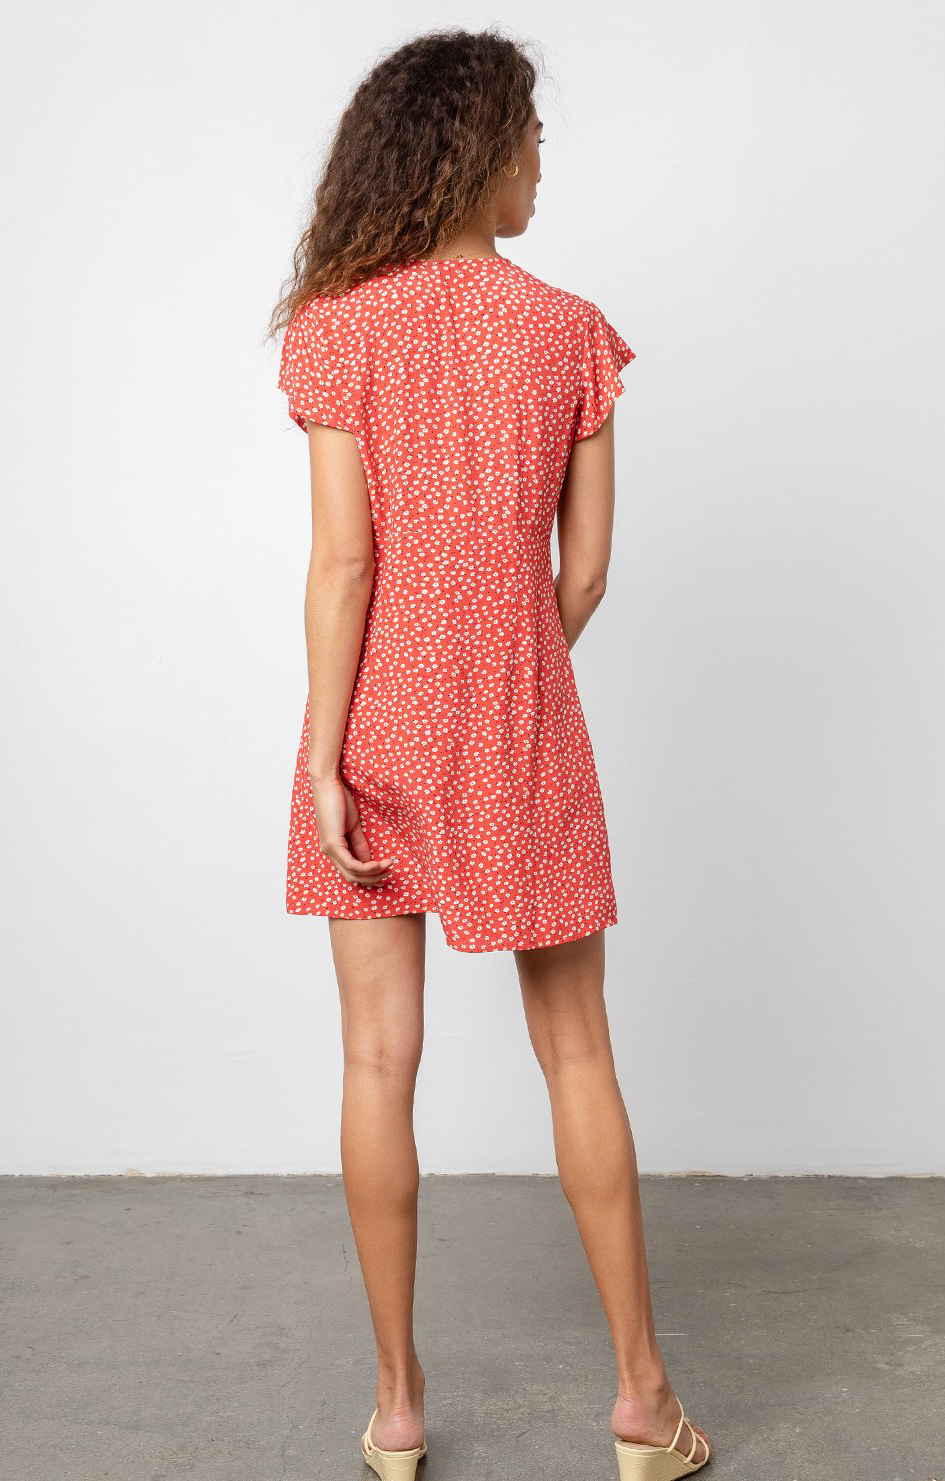 Helena Dress In Carmine Daise - Rails